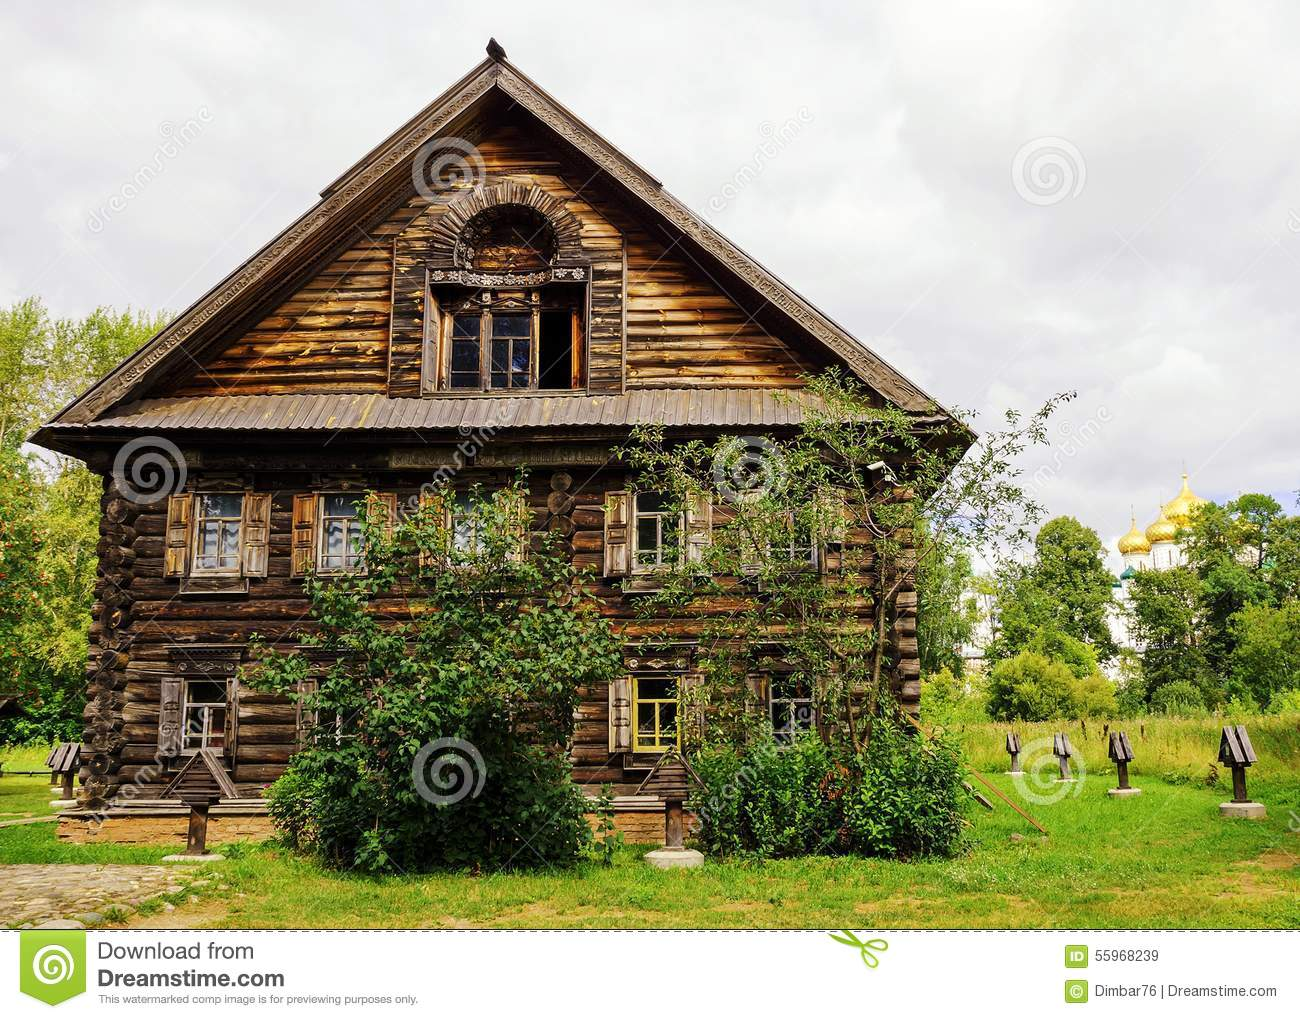 Russian Wooden House In The Museum Of Wooden Architecture In